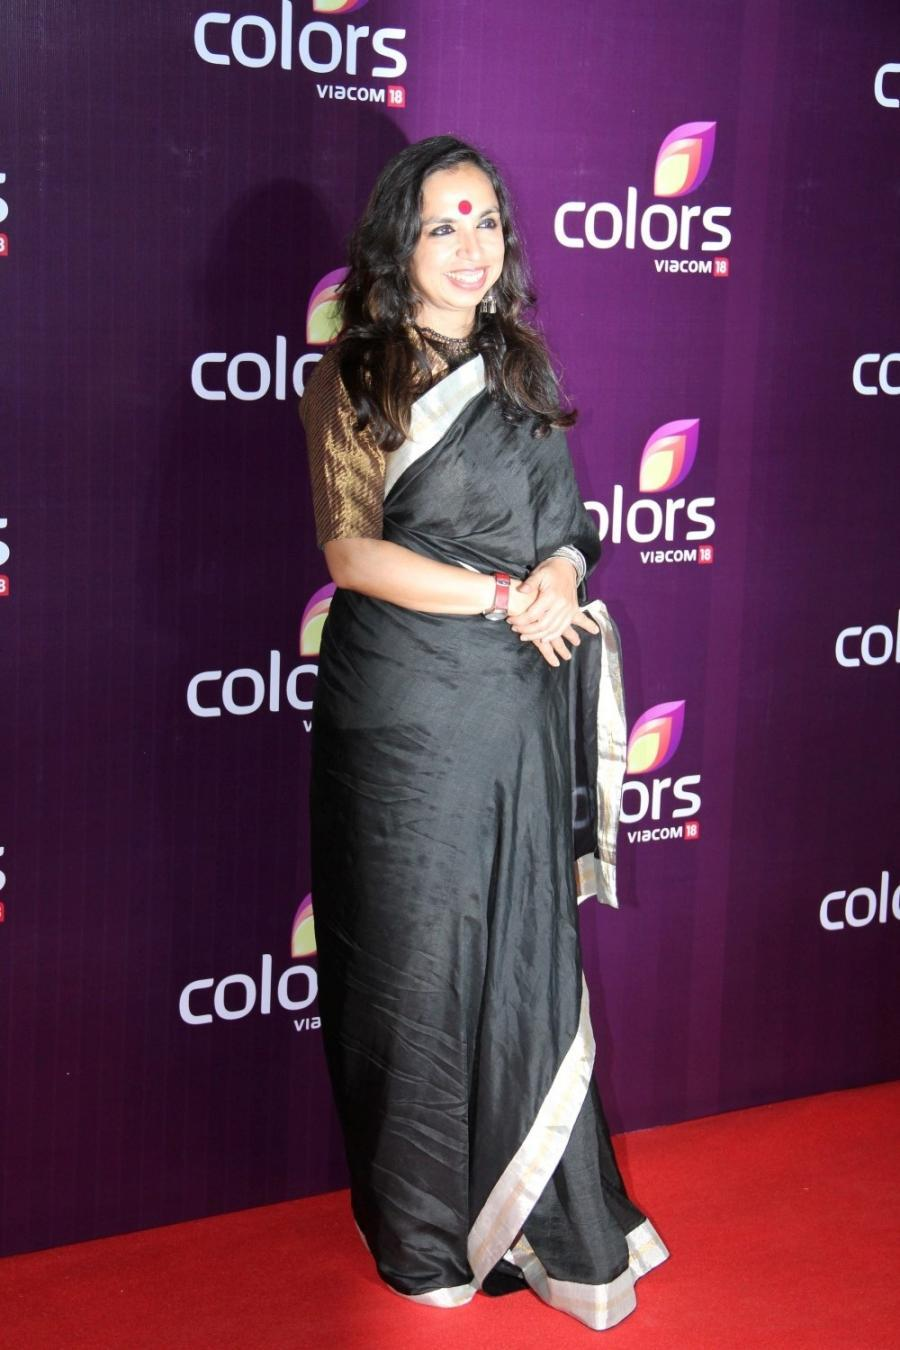 Colors Leadership Awards 2015 Photos